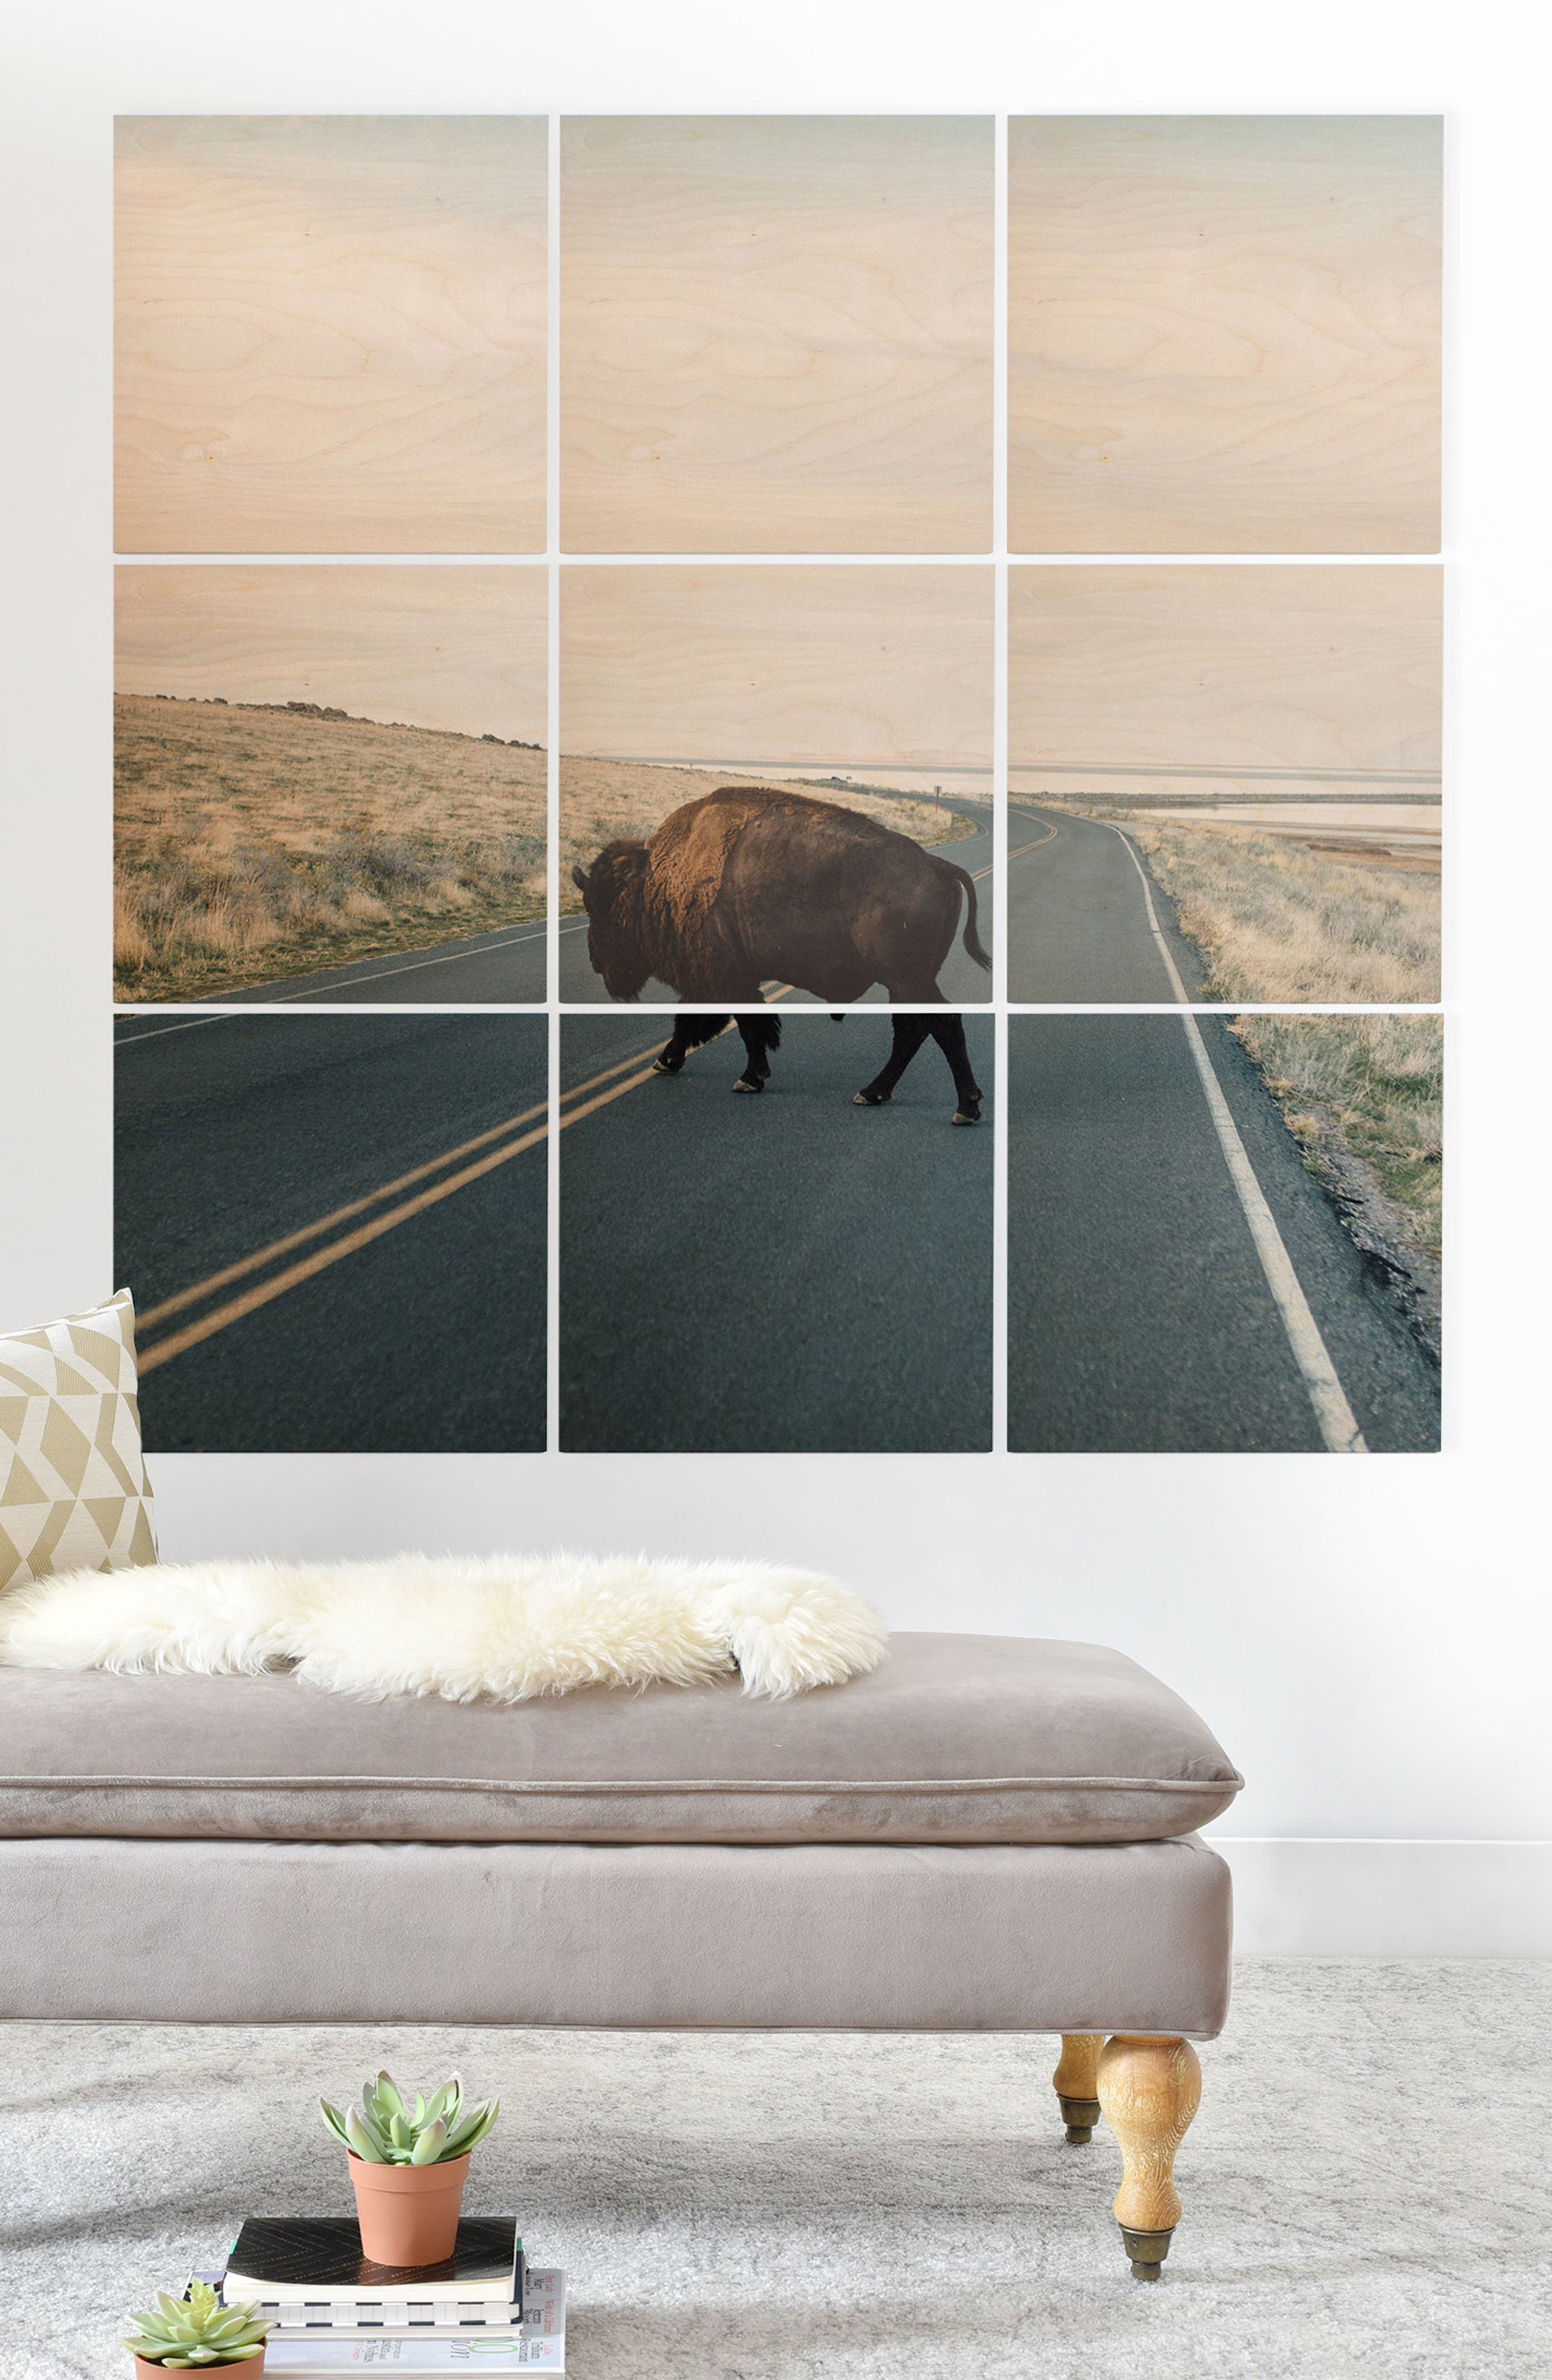 9-Piece Wood Wall Mural,                             Alternate thumbnail 3, color,                             250